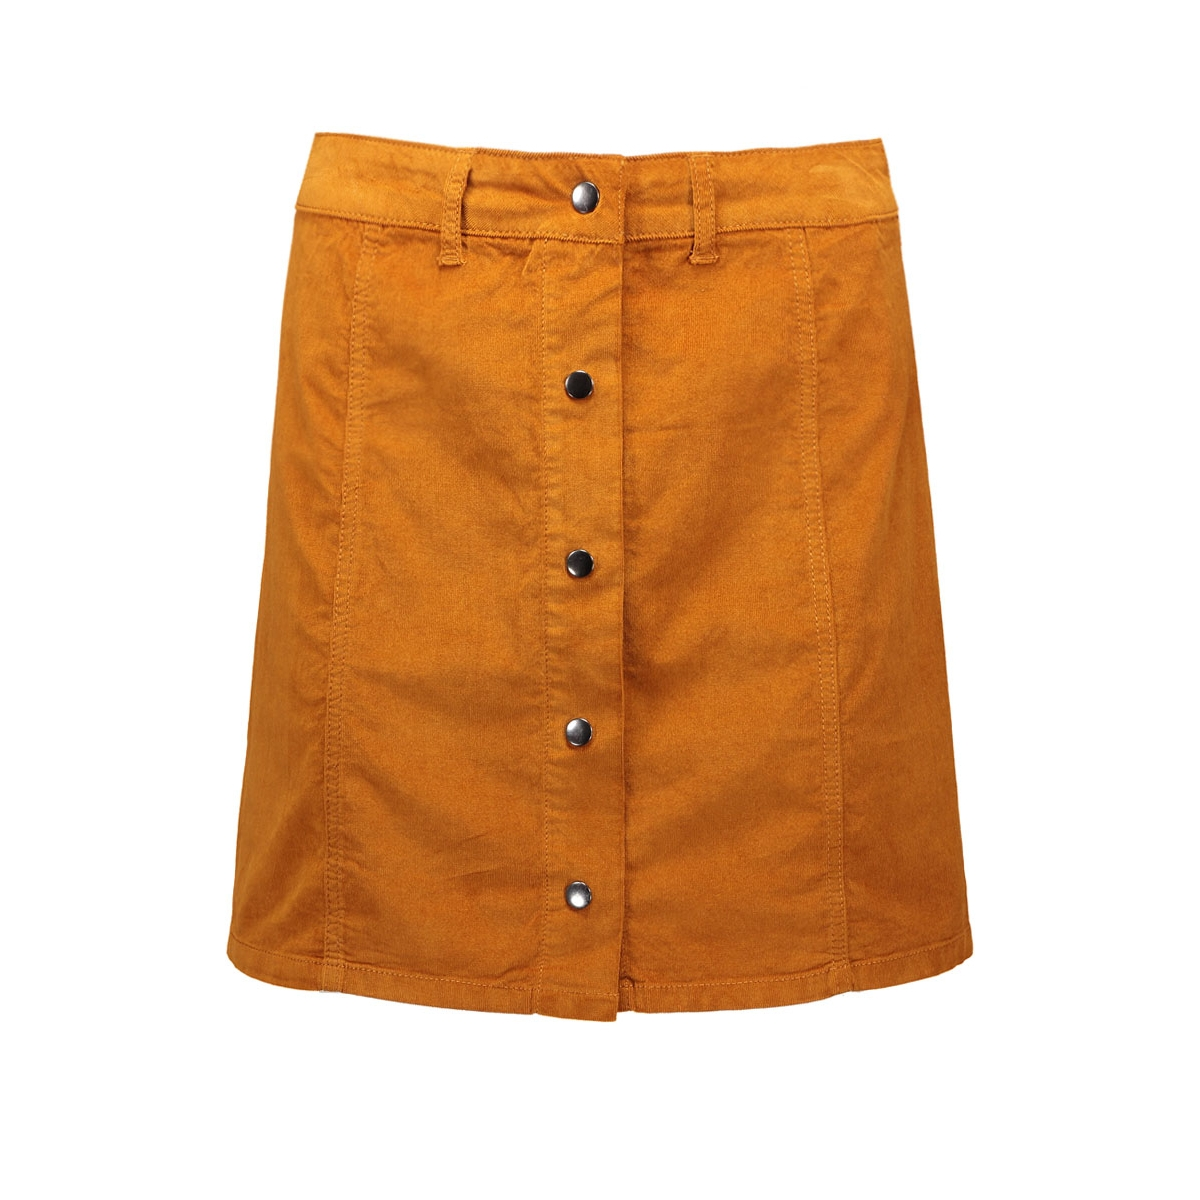 visong skirt 14036633 vila rok roasted pecan